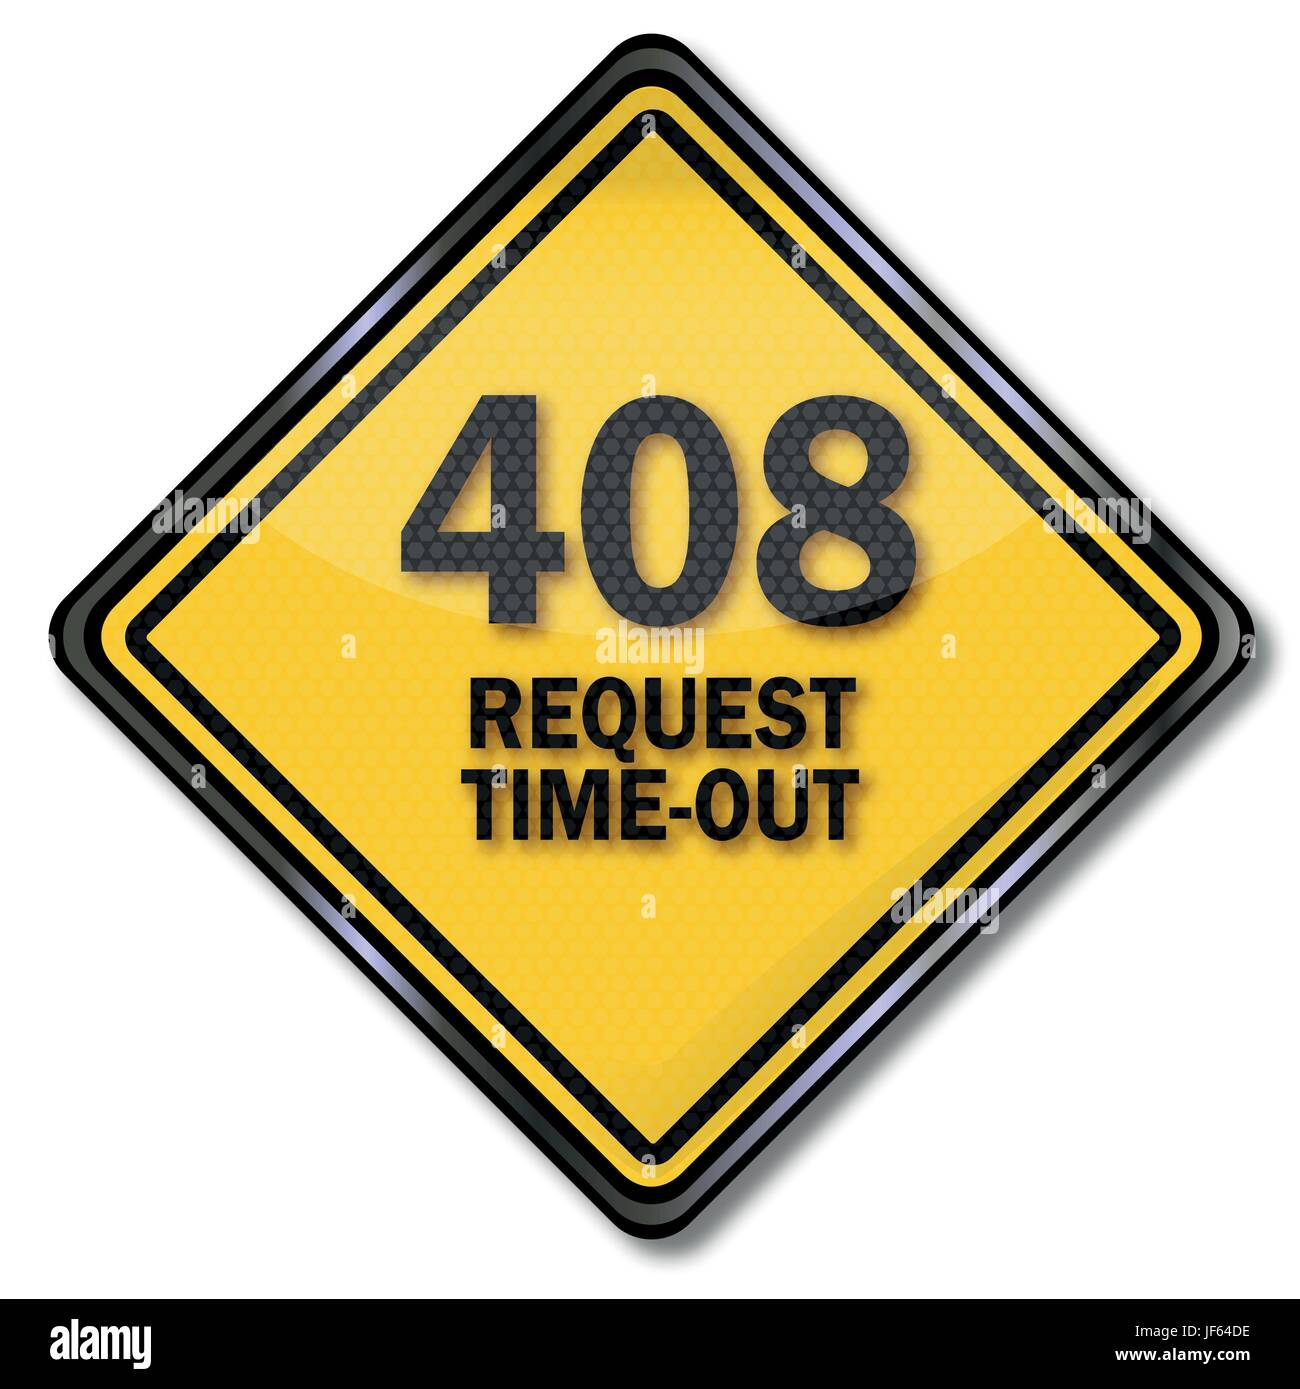 computer plate 408 request time-out - Stock Vector